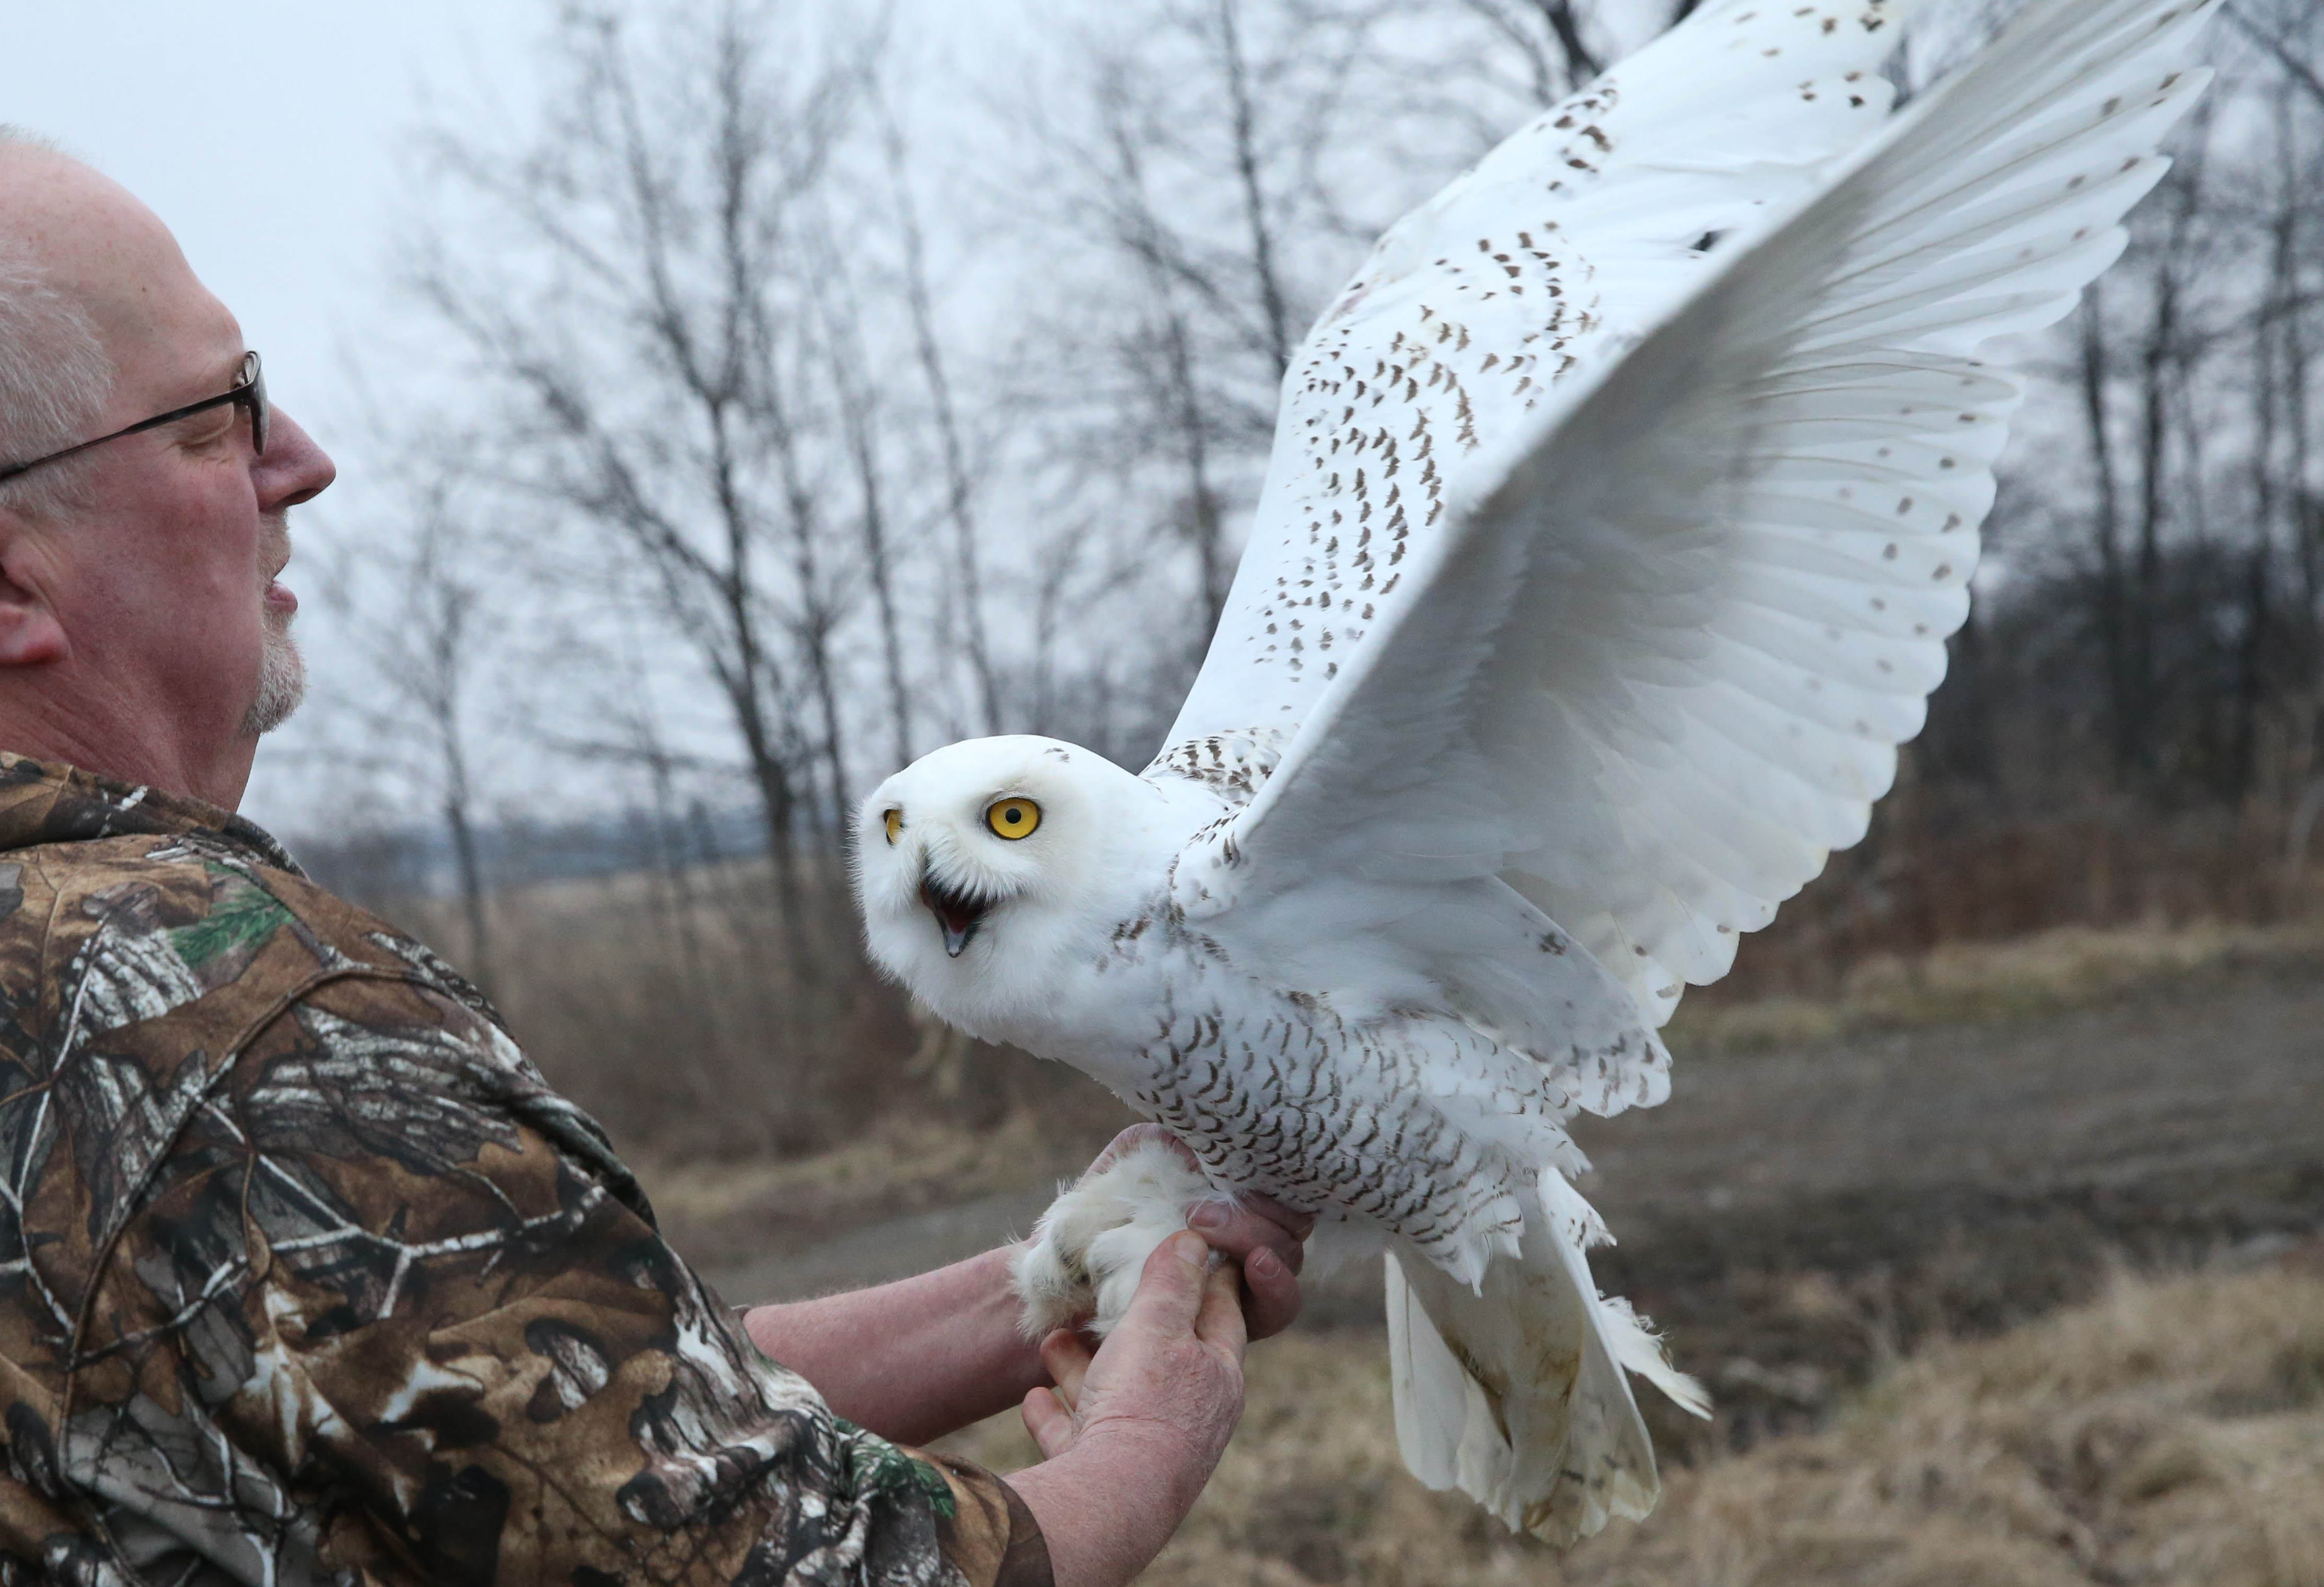 The snowy owl that was found with a broken wing and emaciated in December was released in the Town of Wilson by Marianne Hites of Messinger Woods Wildlife Care & Education Center, Wednesday, Feb. 22, 2017.  David Ganesky of Project SNOWstorm, which does snowy owl research and data collection, holds the owl until it's banded.  (Sharon Cantillon/Buffalo News)